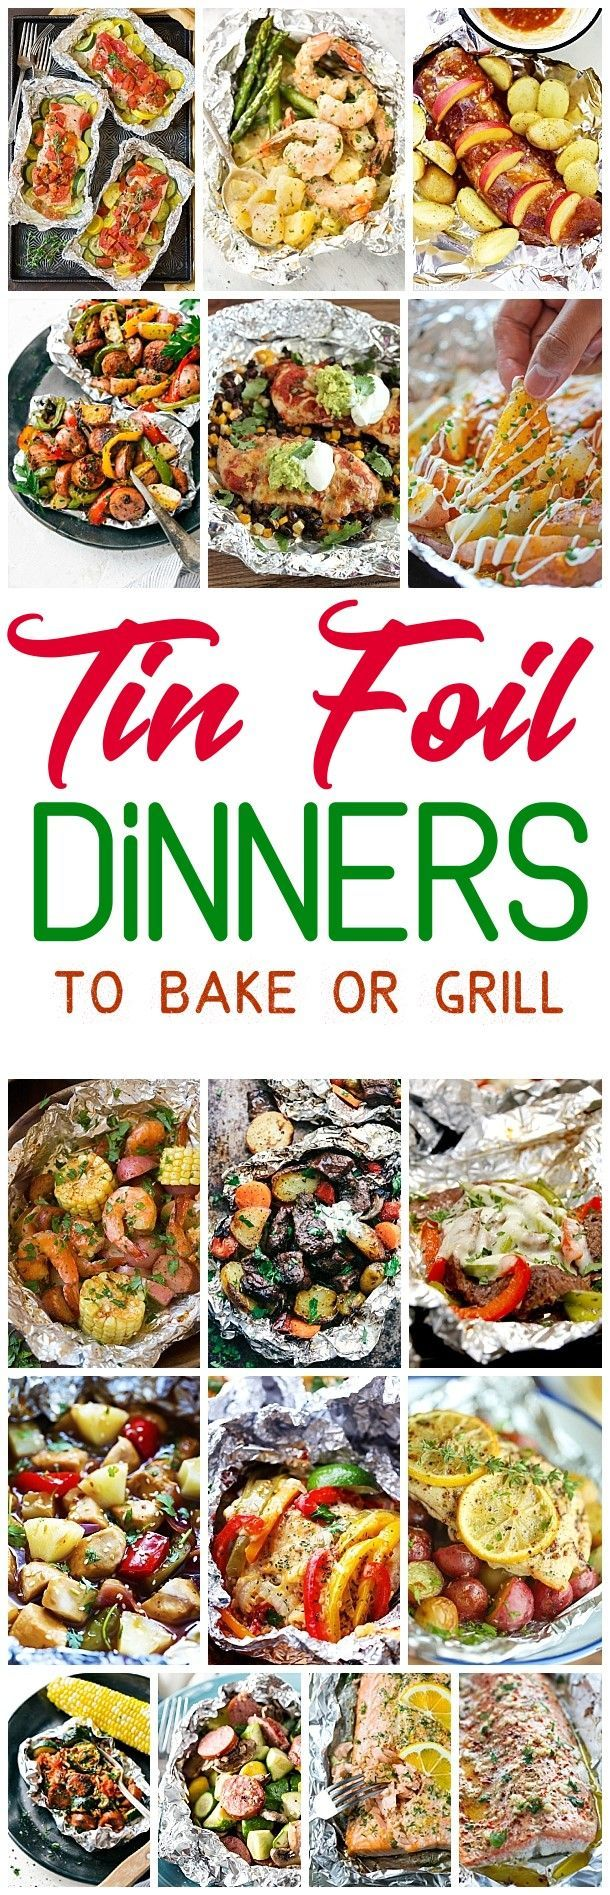 The BEST Tin Foil Dinners Recipes to Bake or Grill - Quick and Easy Meal Prep solution and cleanup recipes! So many delicious chicken, beef, salmon, pork, shrimp and chicken tin foil packet dinners you and your family can enjoy making in the oven all year long, throwing on the backyard grill or tossing in the campfire coals this summer! Dreaming in DIY #tinfoilsuppers #tinfoildinners #foilpacketmeals #foilpackrecipes #mealprep